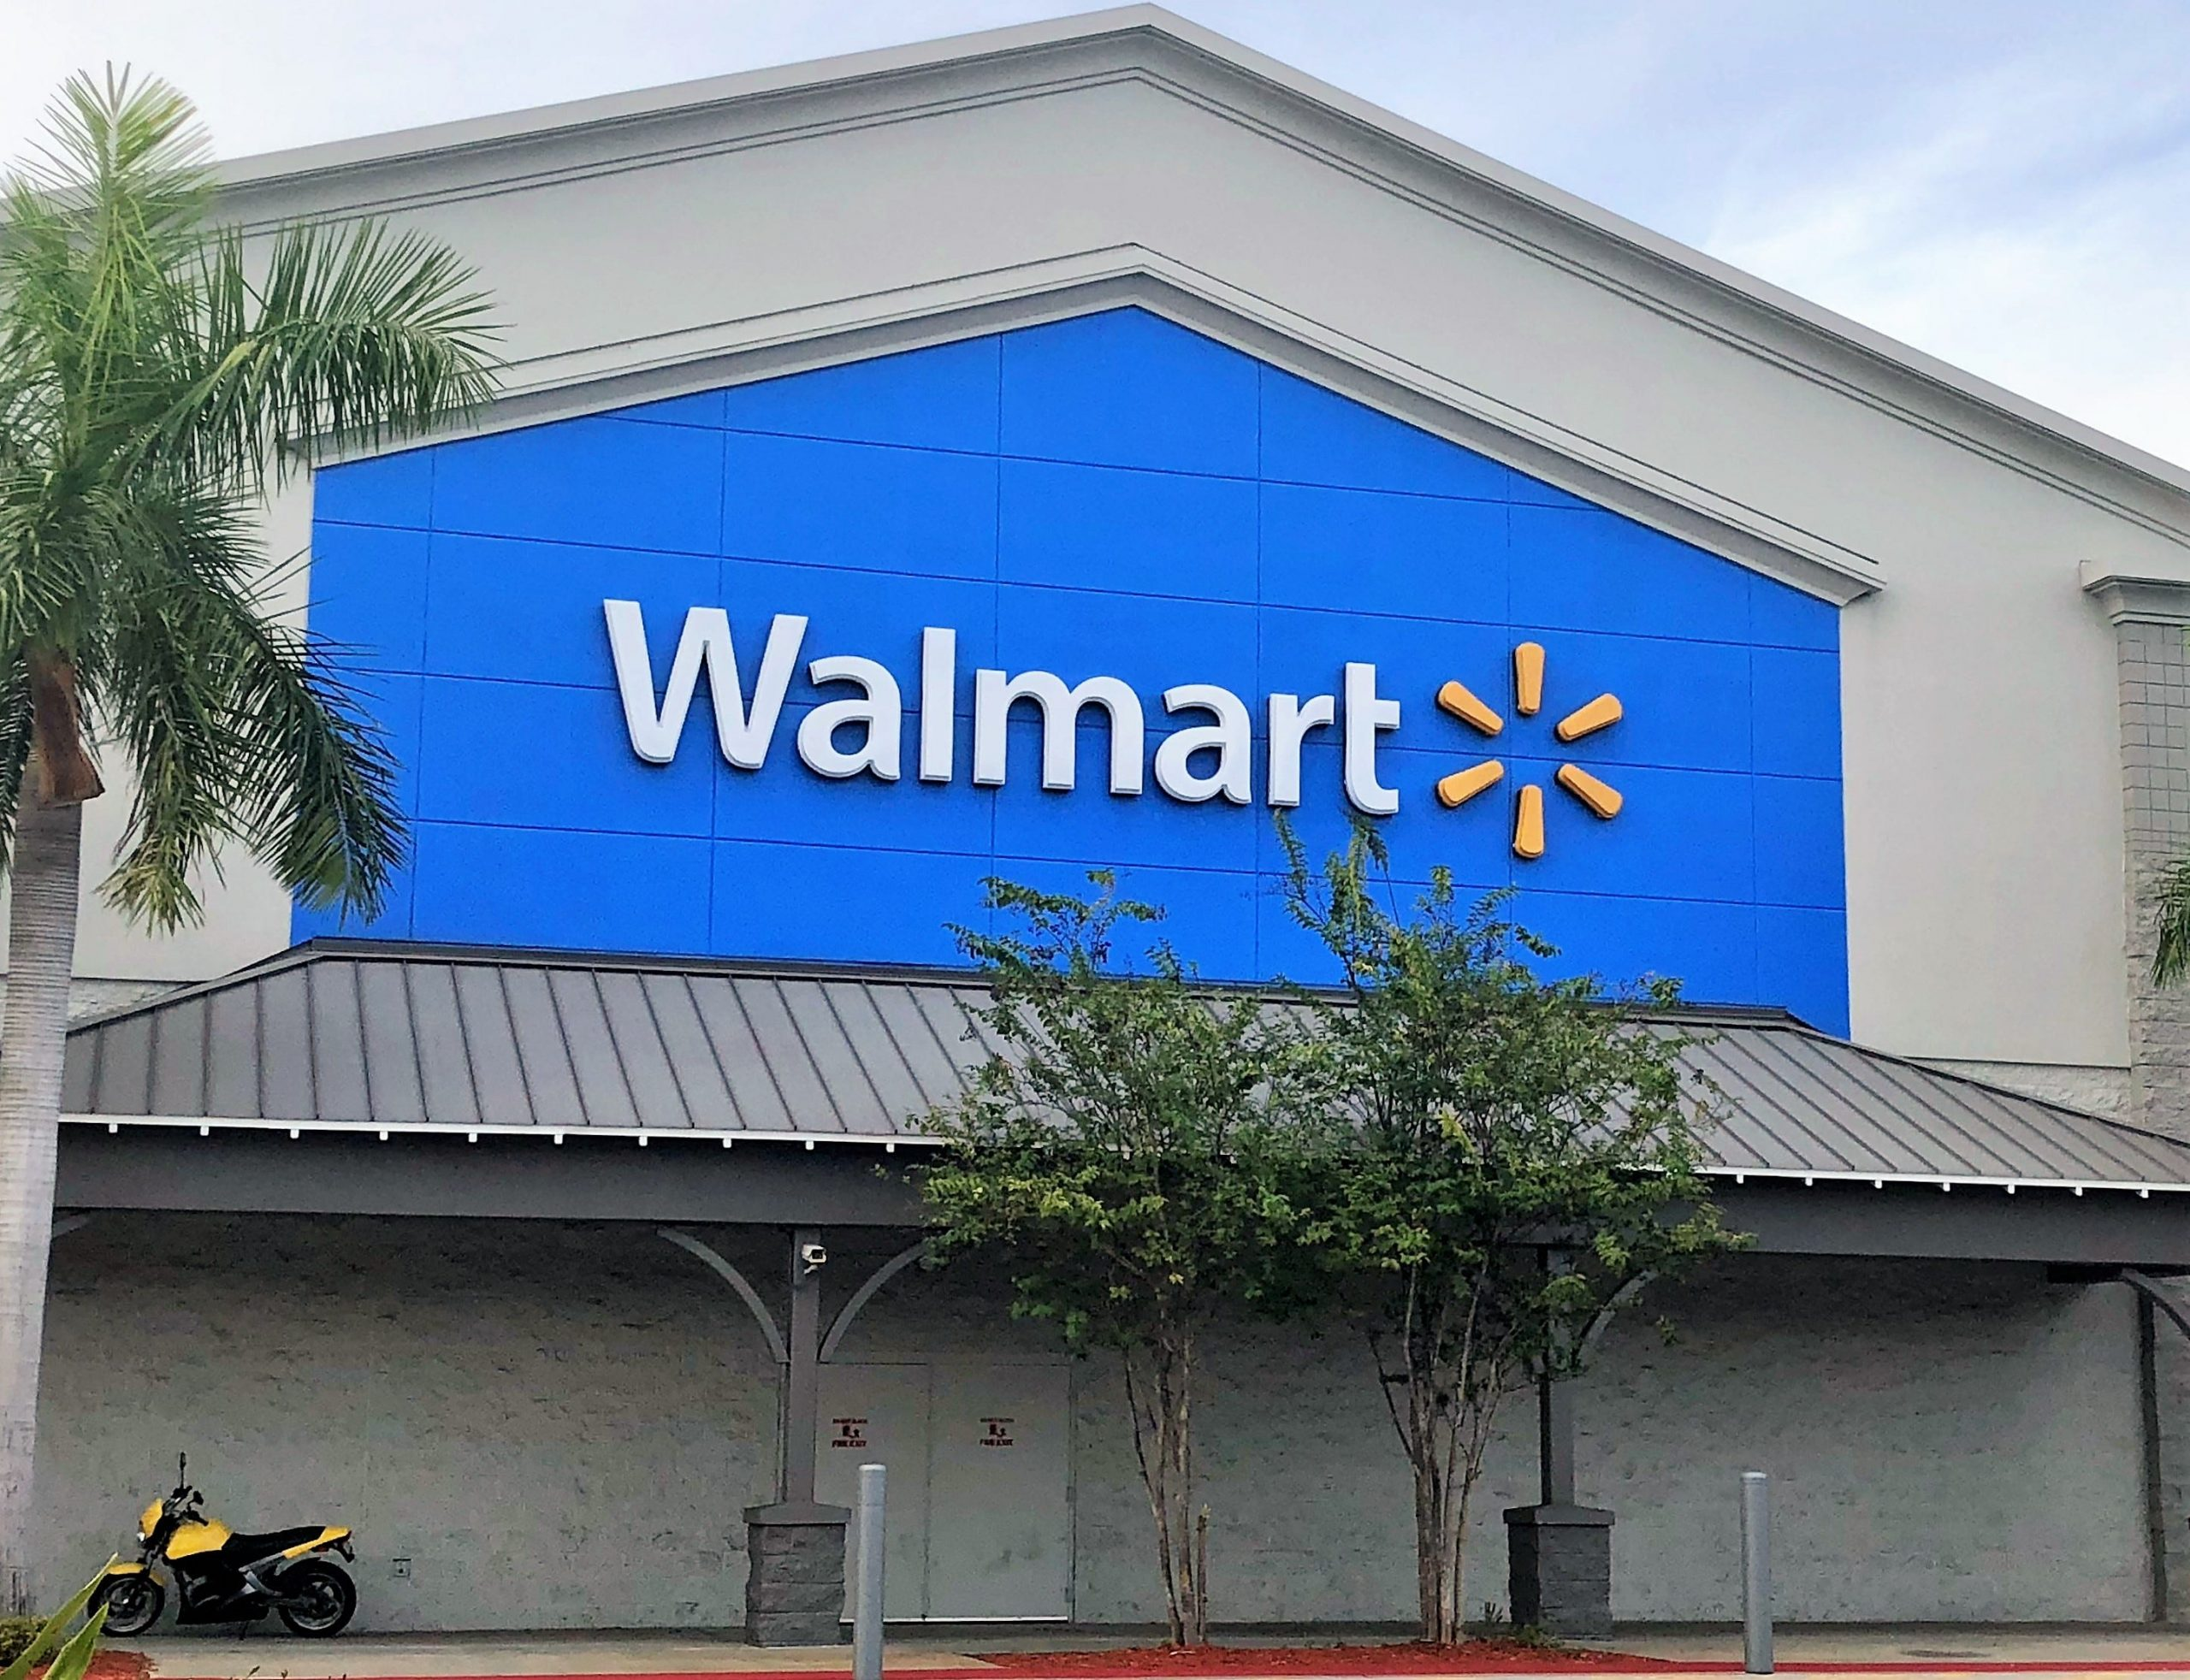 Walmart adding automated warehouses with robots to stores to help fulfill pickup, delivery orders